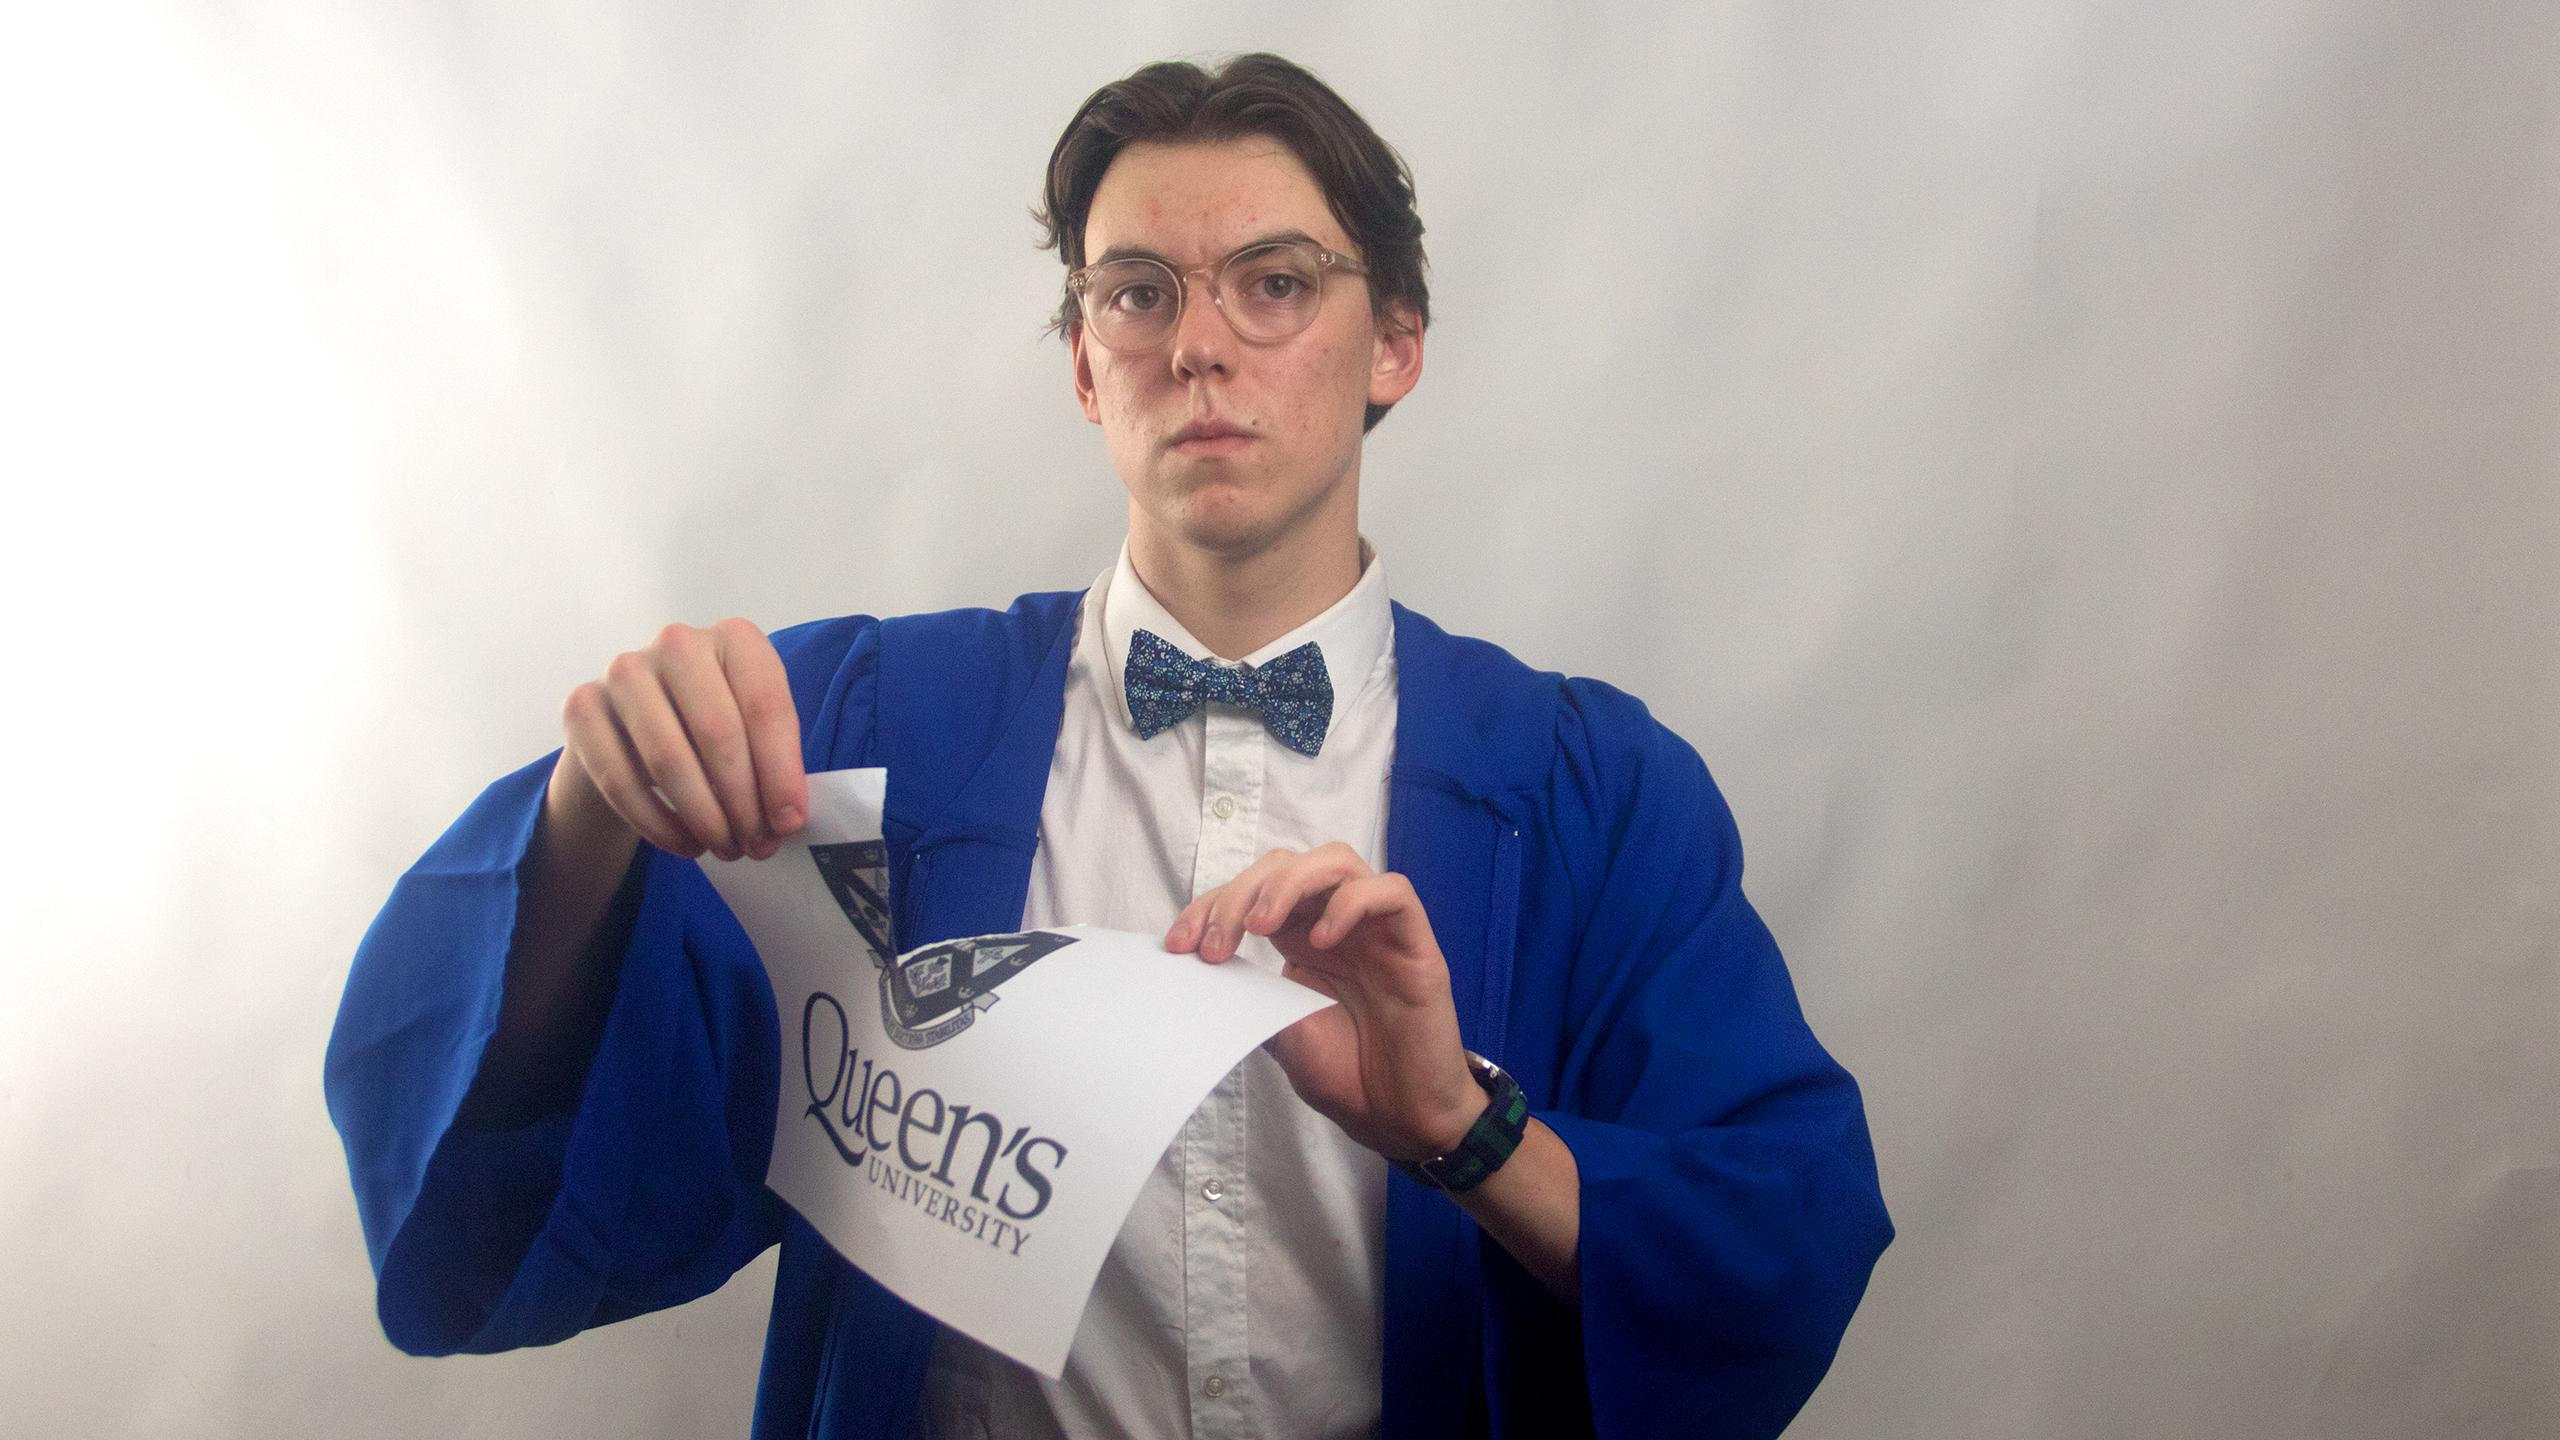 A serious looking guy with glasses wearing a button up shirt and bow tie ripping a paper with the Queen's logo